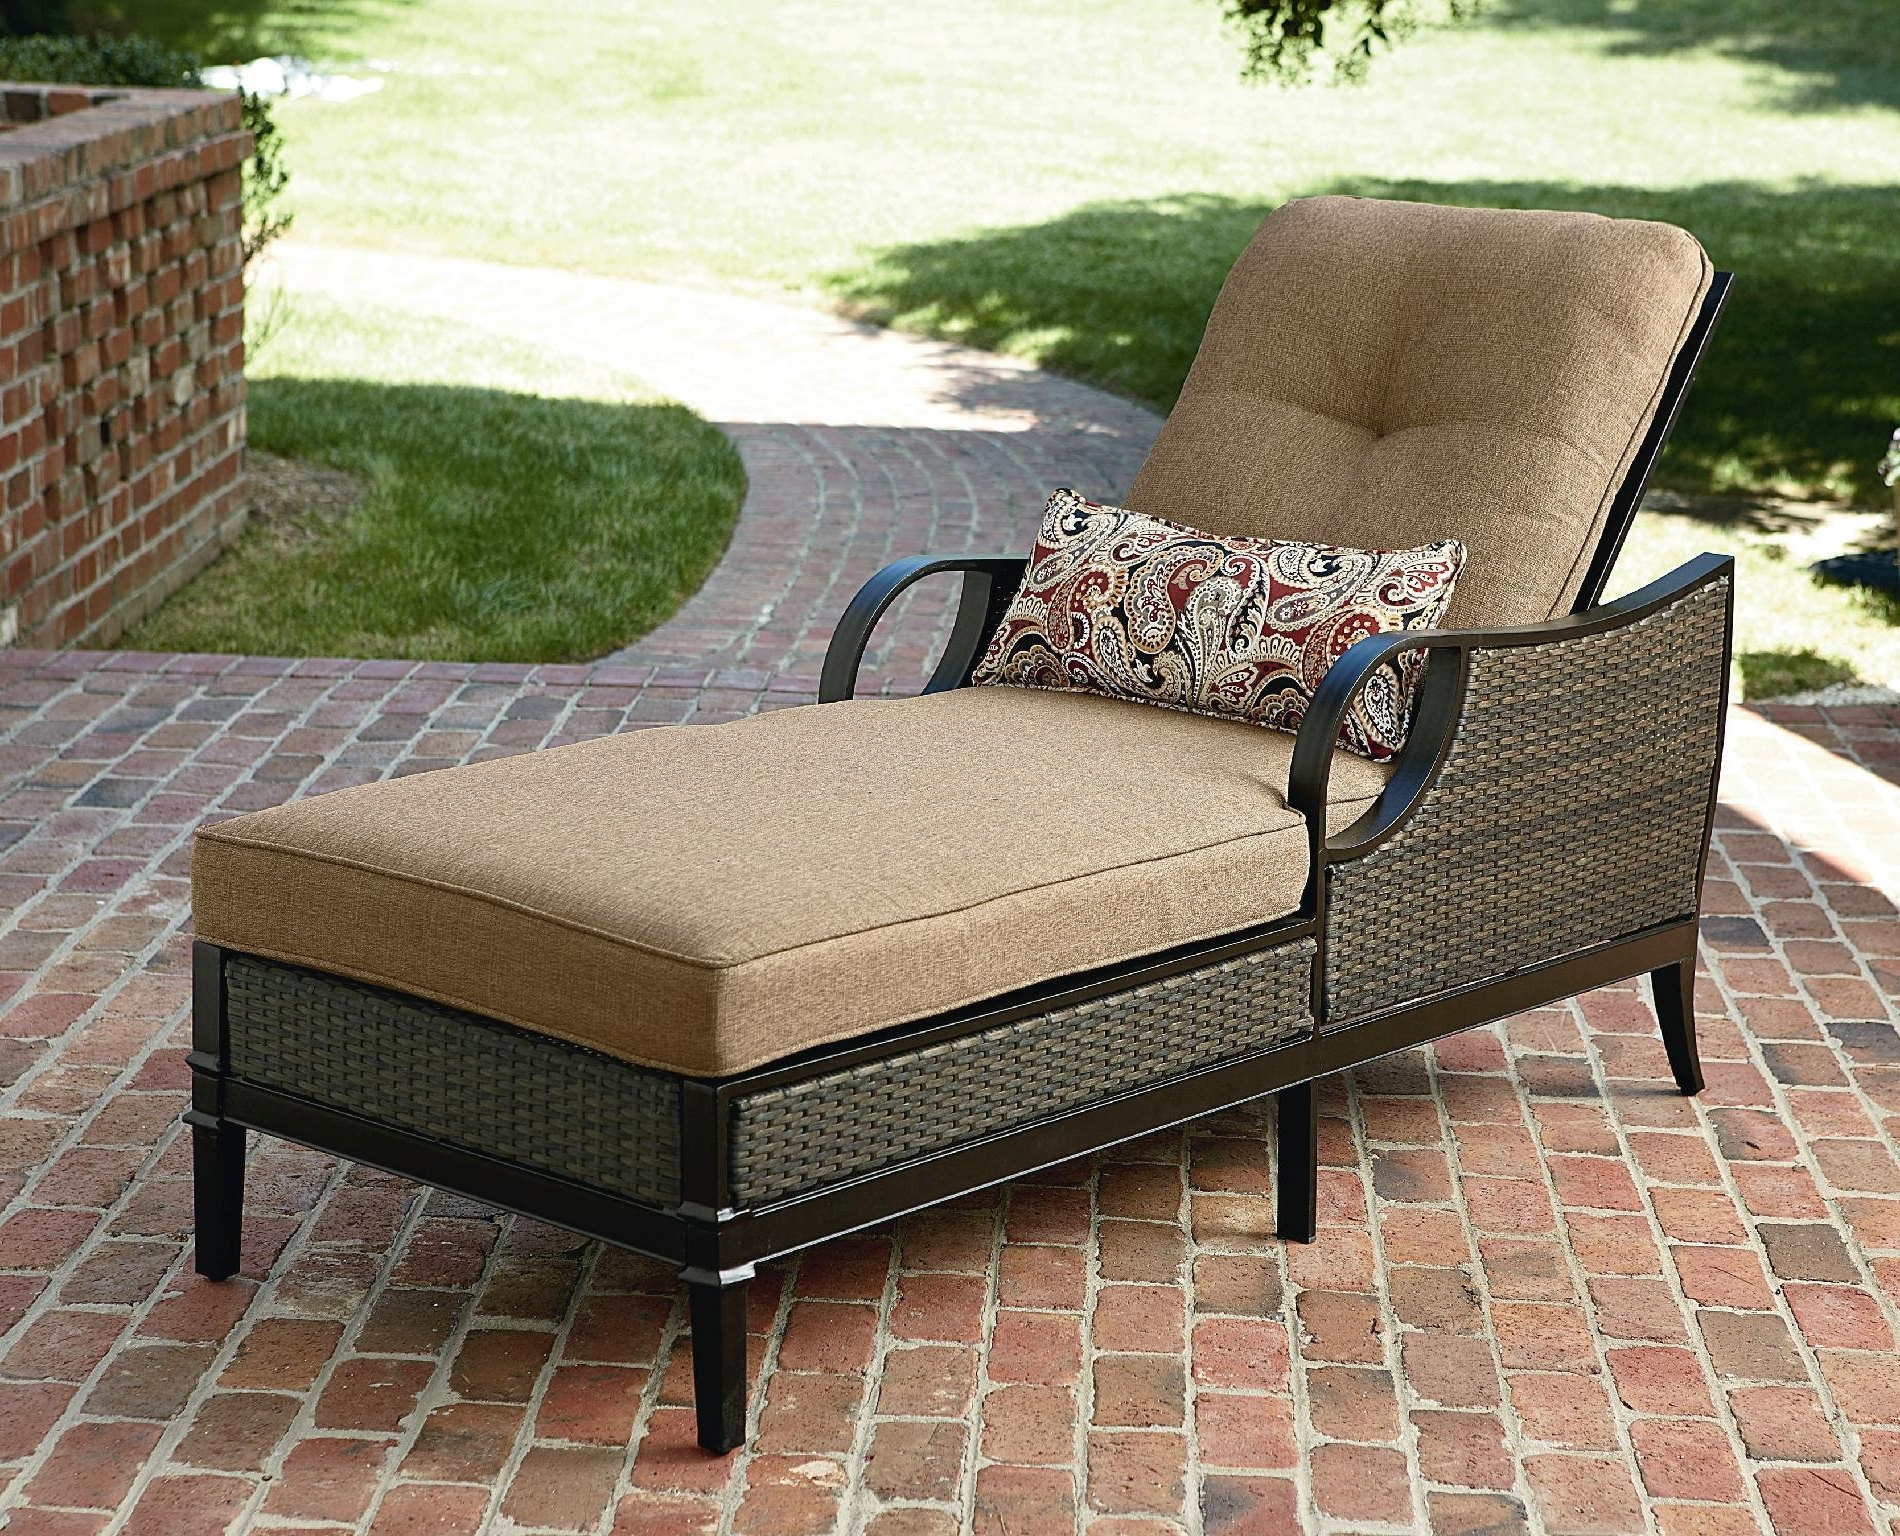 Patio Furniture Chaise Lounges With Regard To Most Recently Released Patio Furniture Chaise Lounge Chairs • Lounge Chairs Ideas (View 15 of 15)